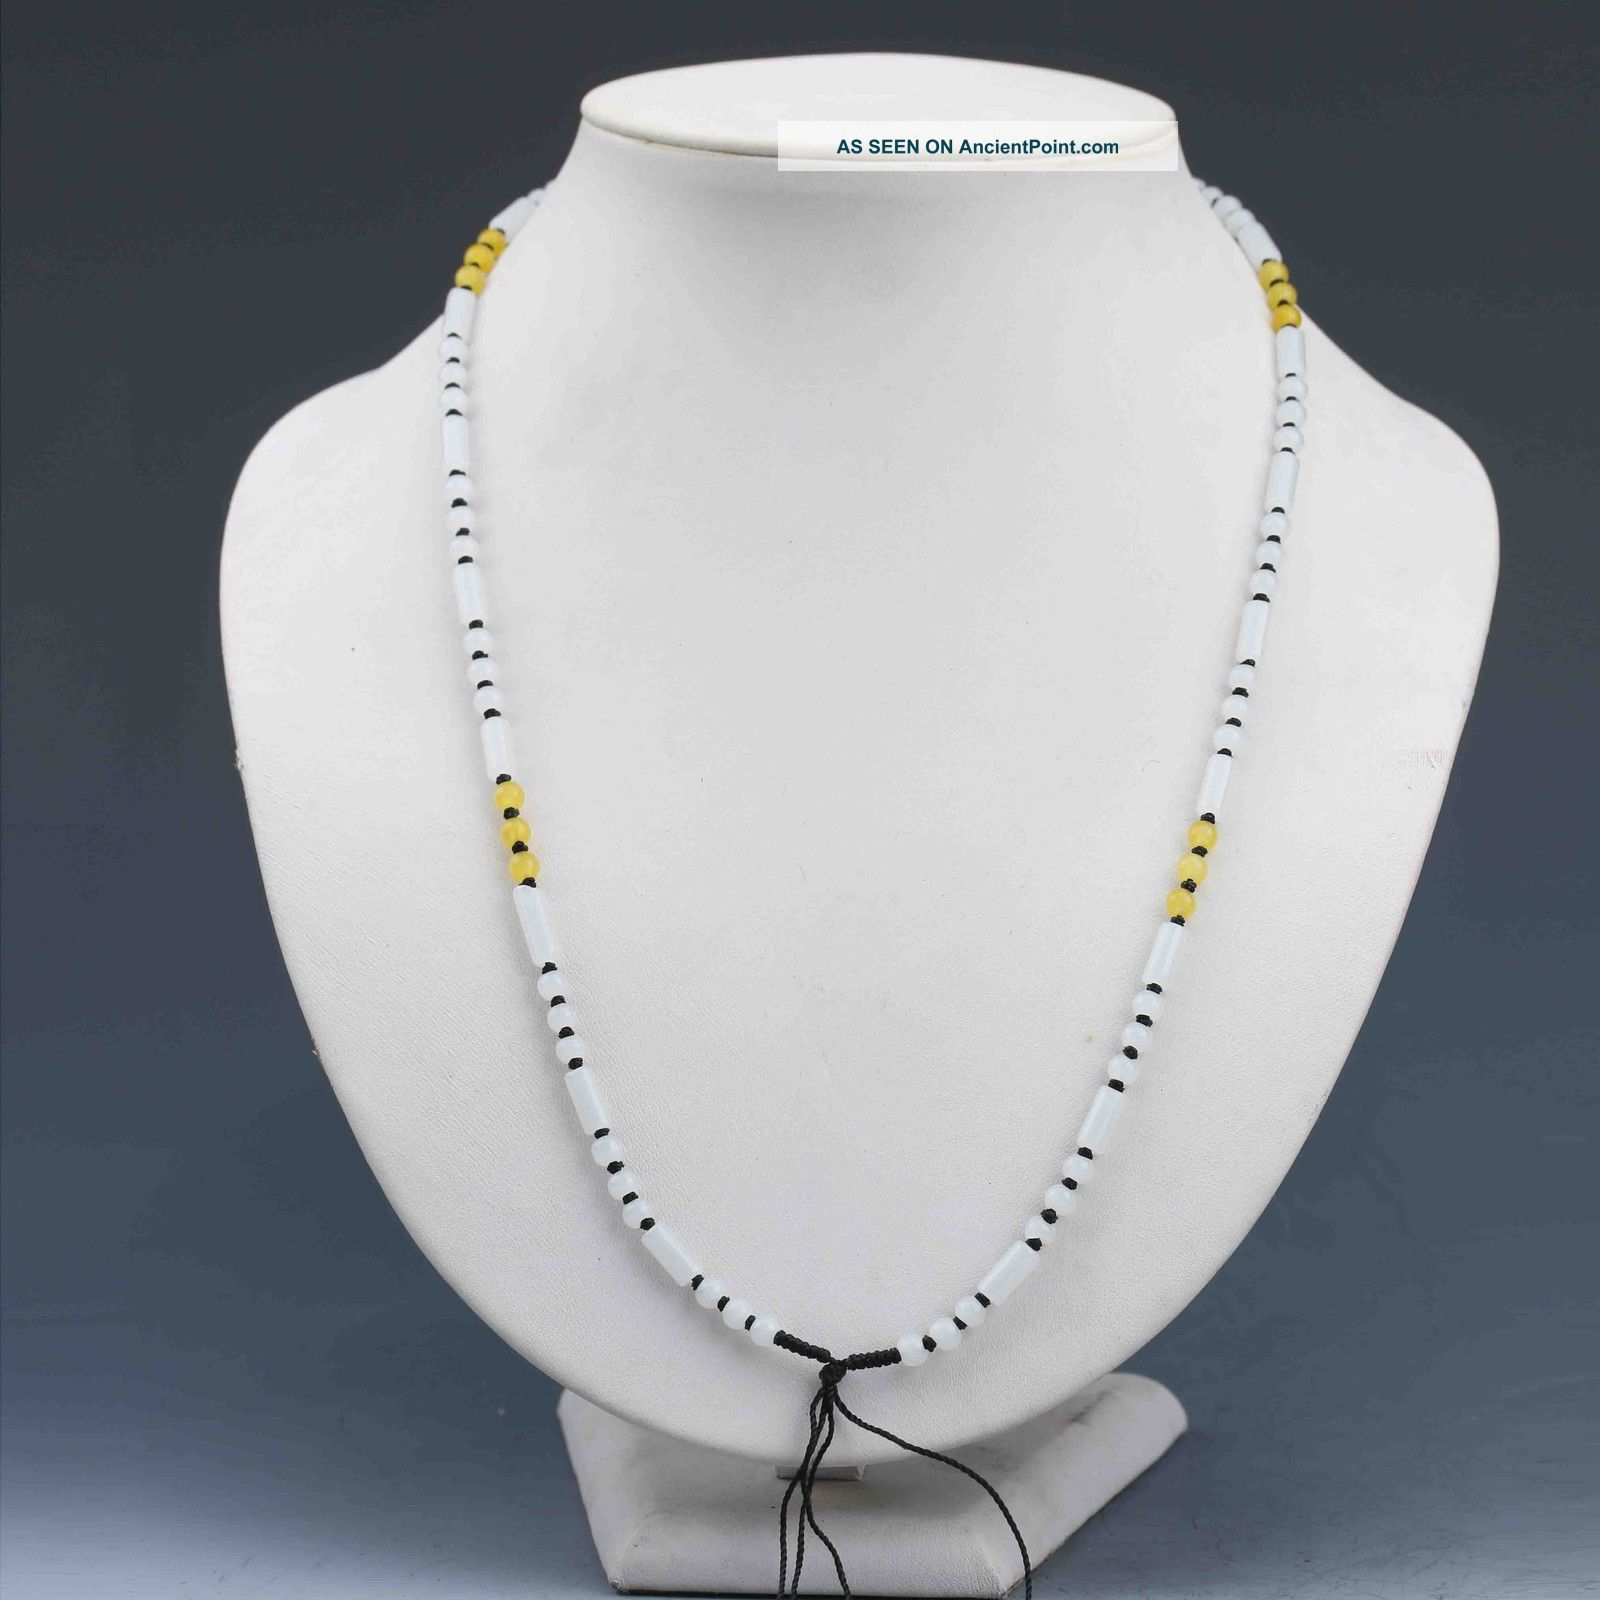 Chinese Natural Handcraft Jade Necklaces G897 Necklaces & Pendants photo